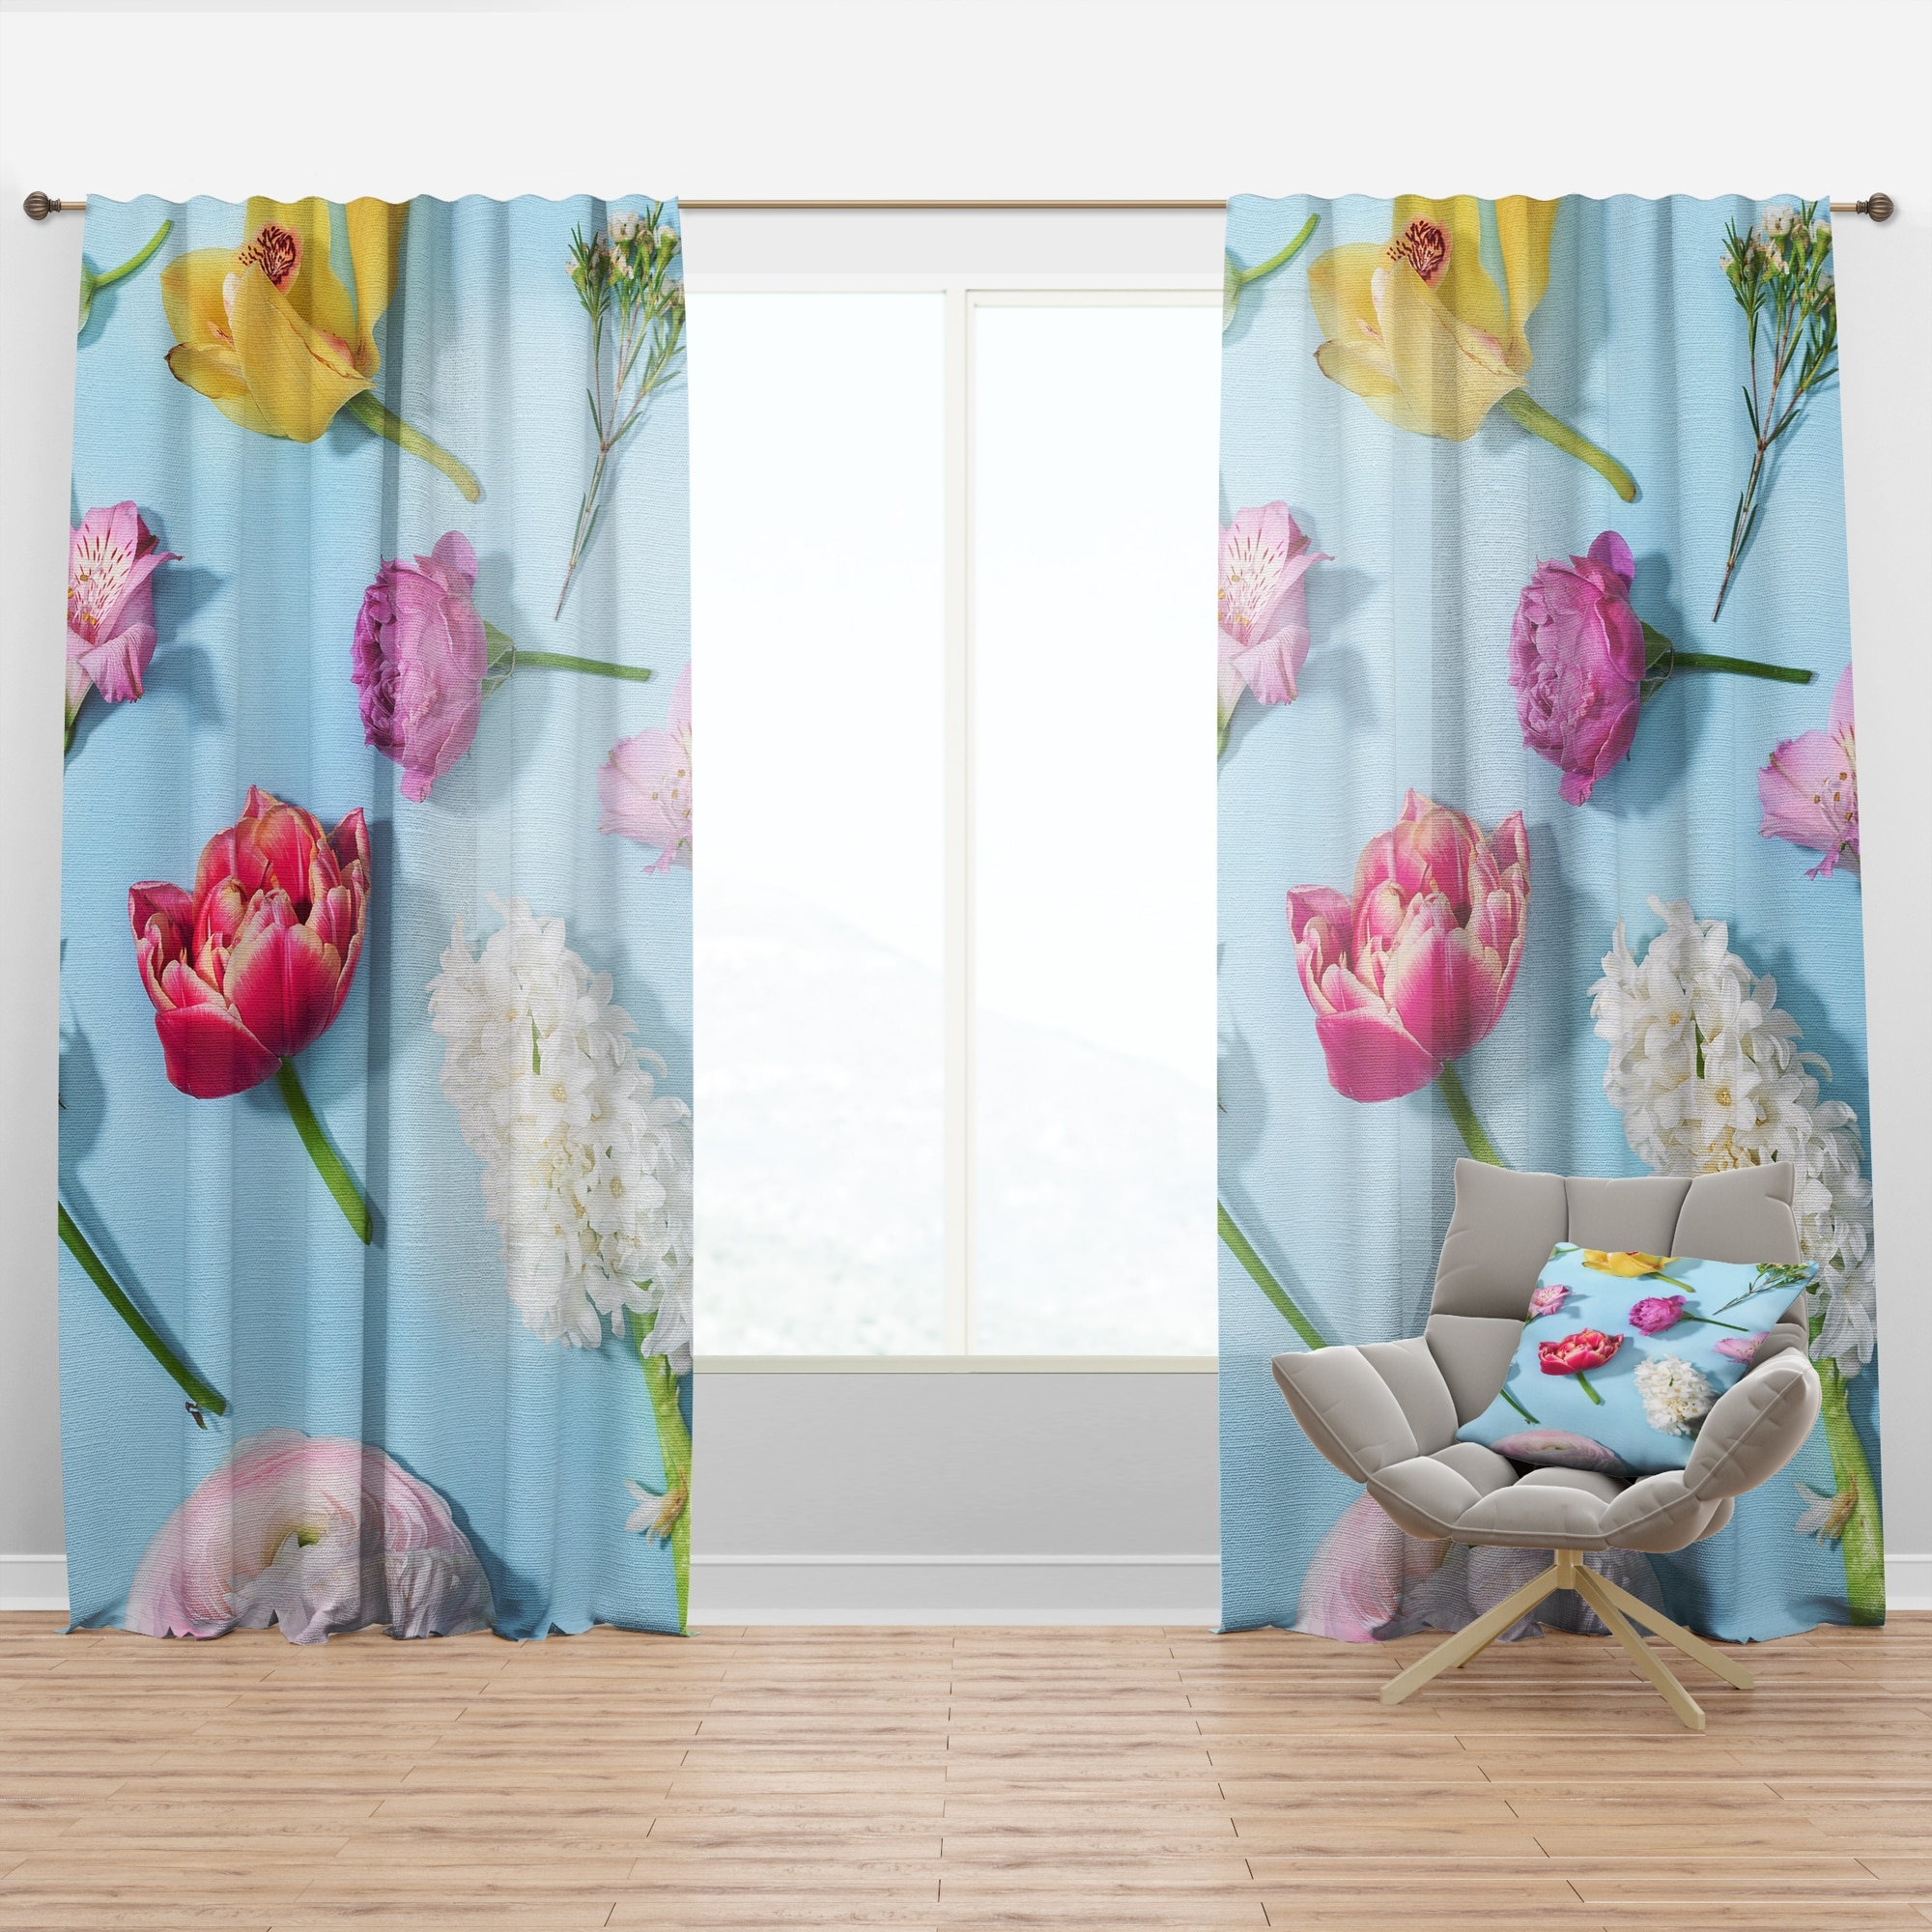 Designart Fresh Beautiful Blooming Flowers Floral Curtain Panel Overstock 29625724